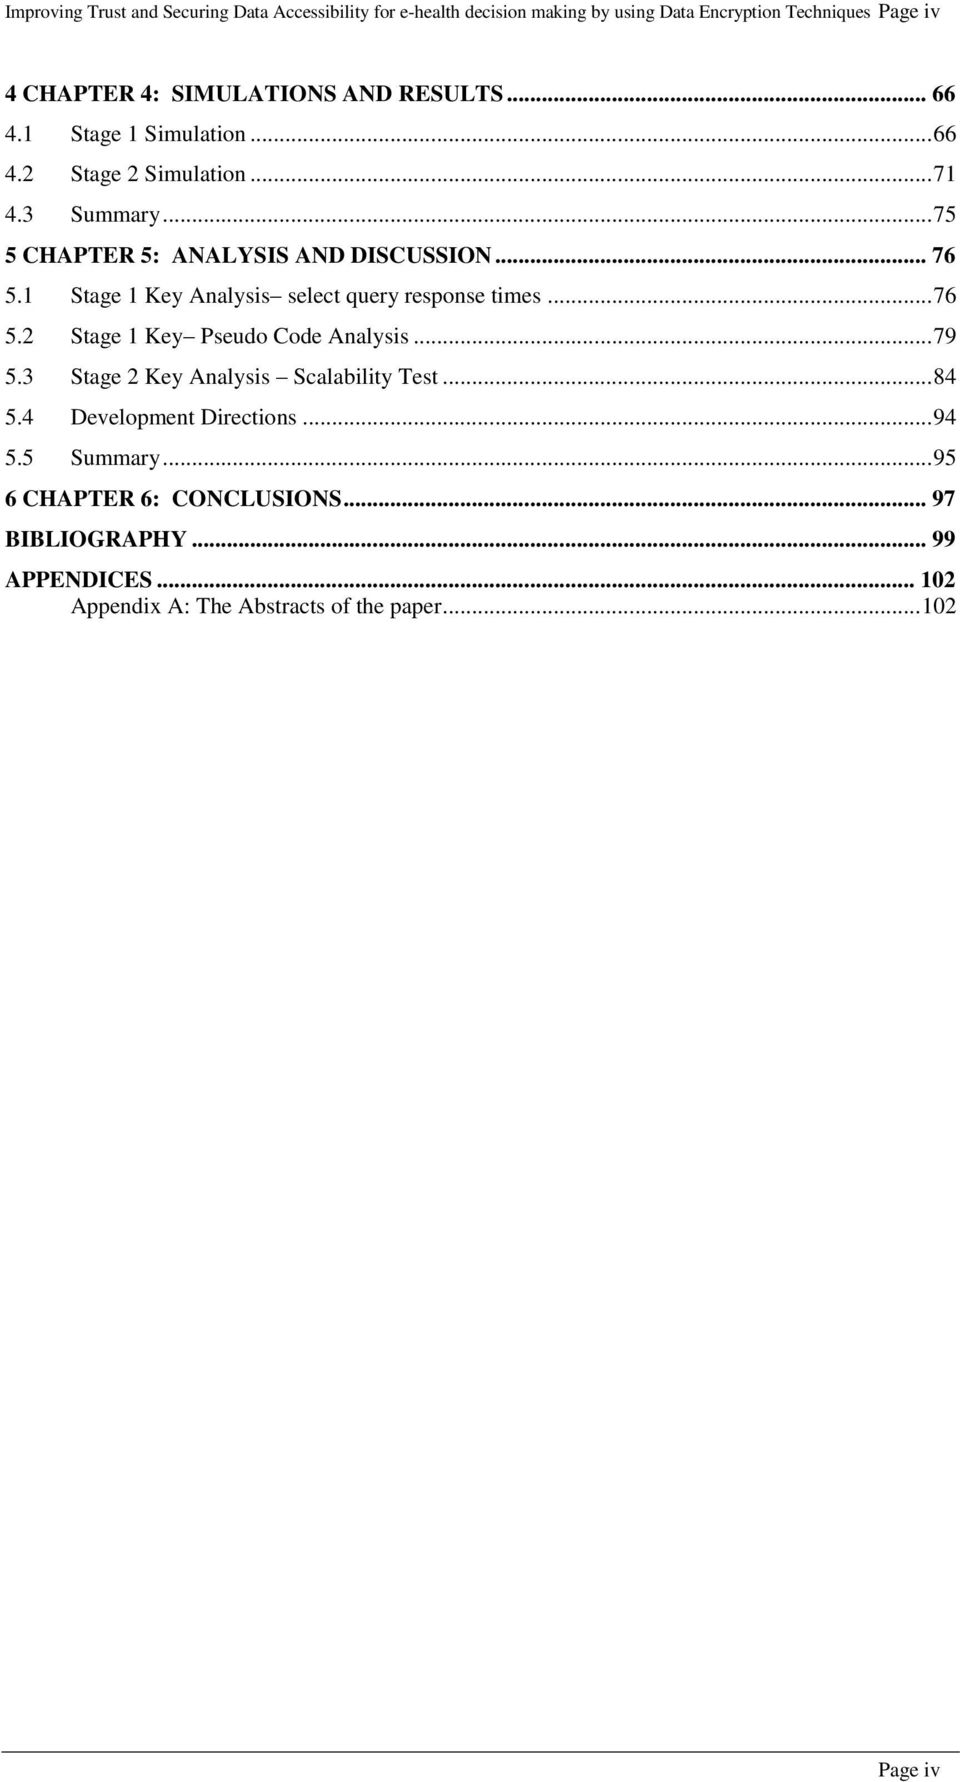 Master of Information Technology (Research) Thesis - PDF